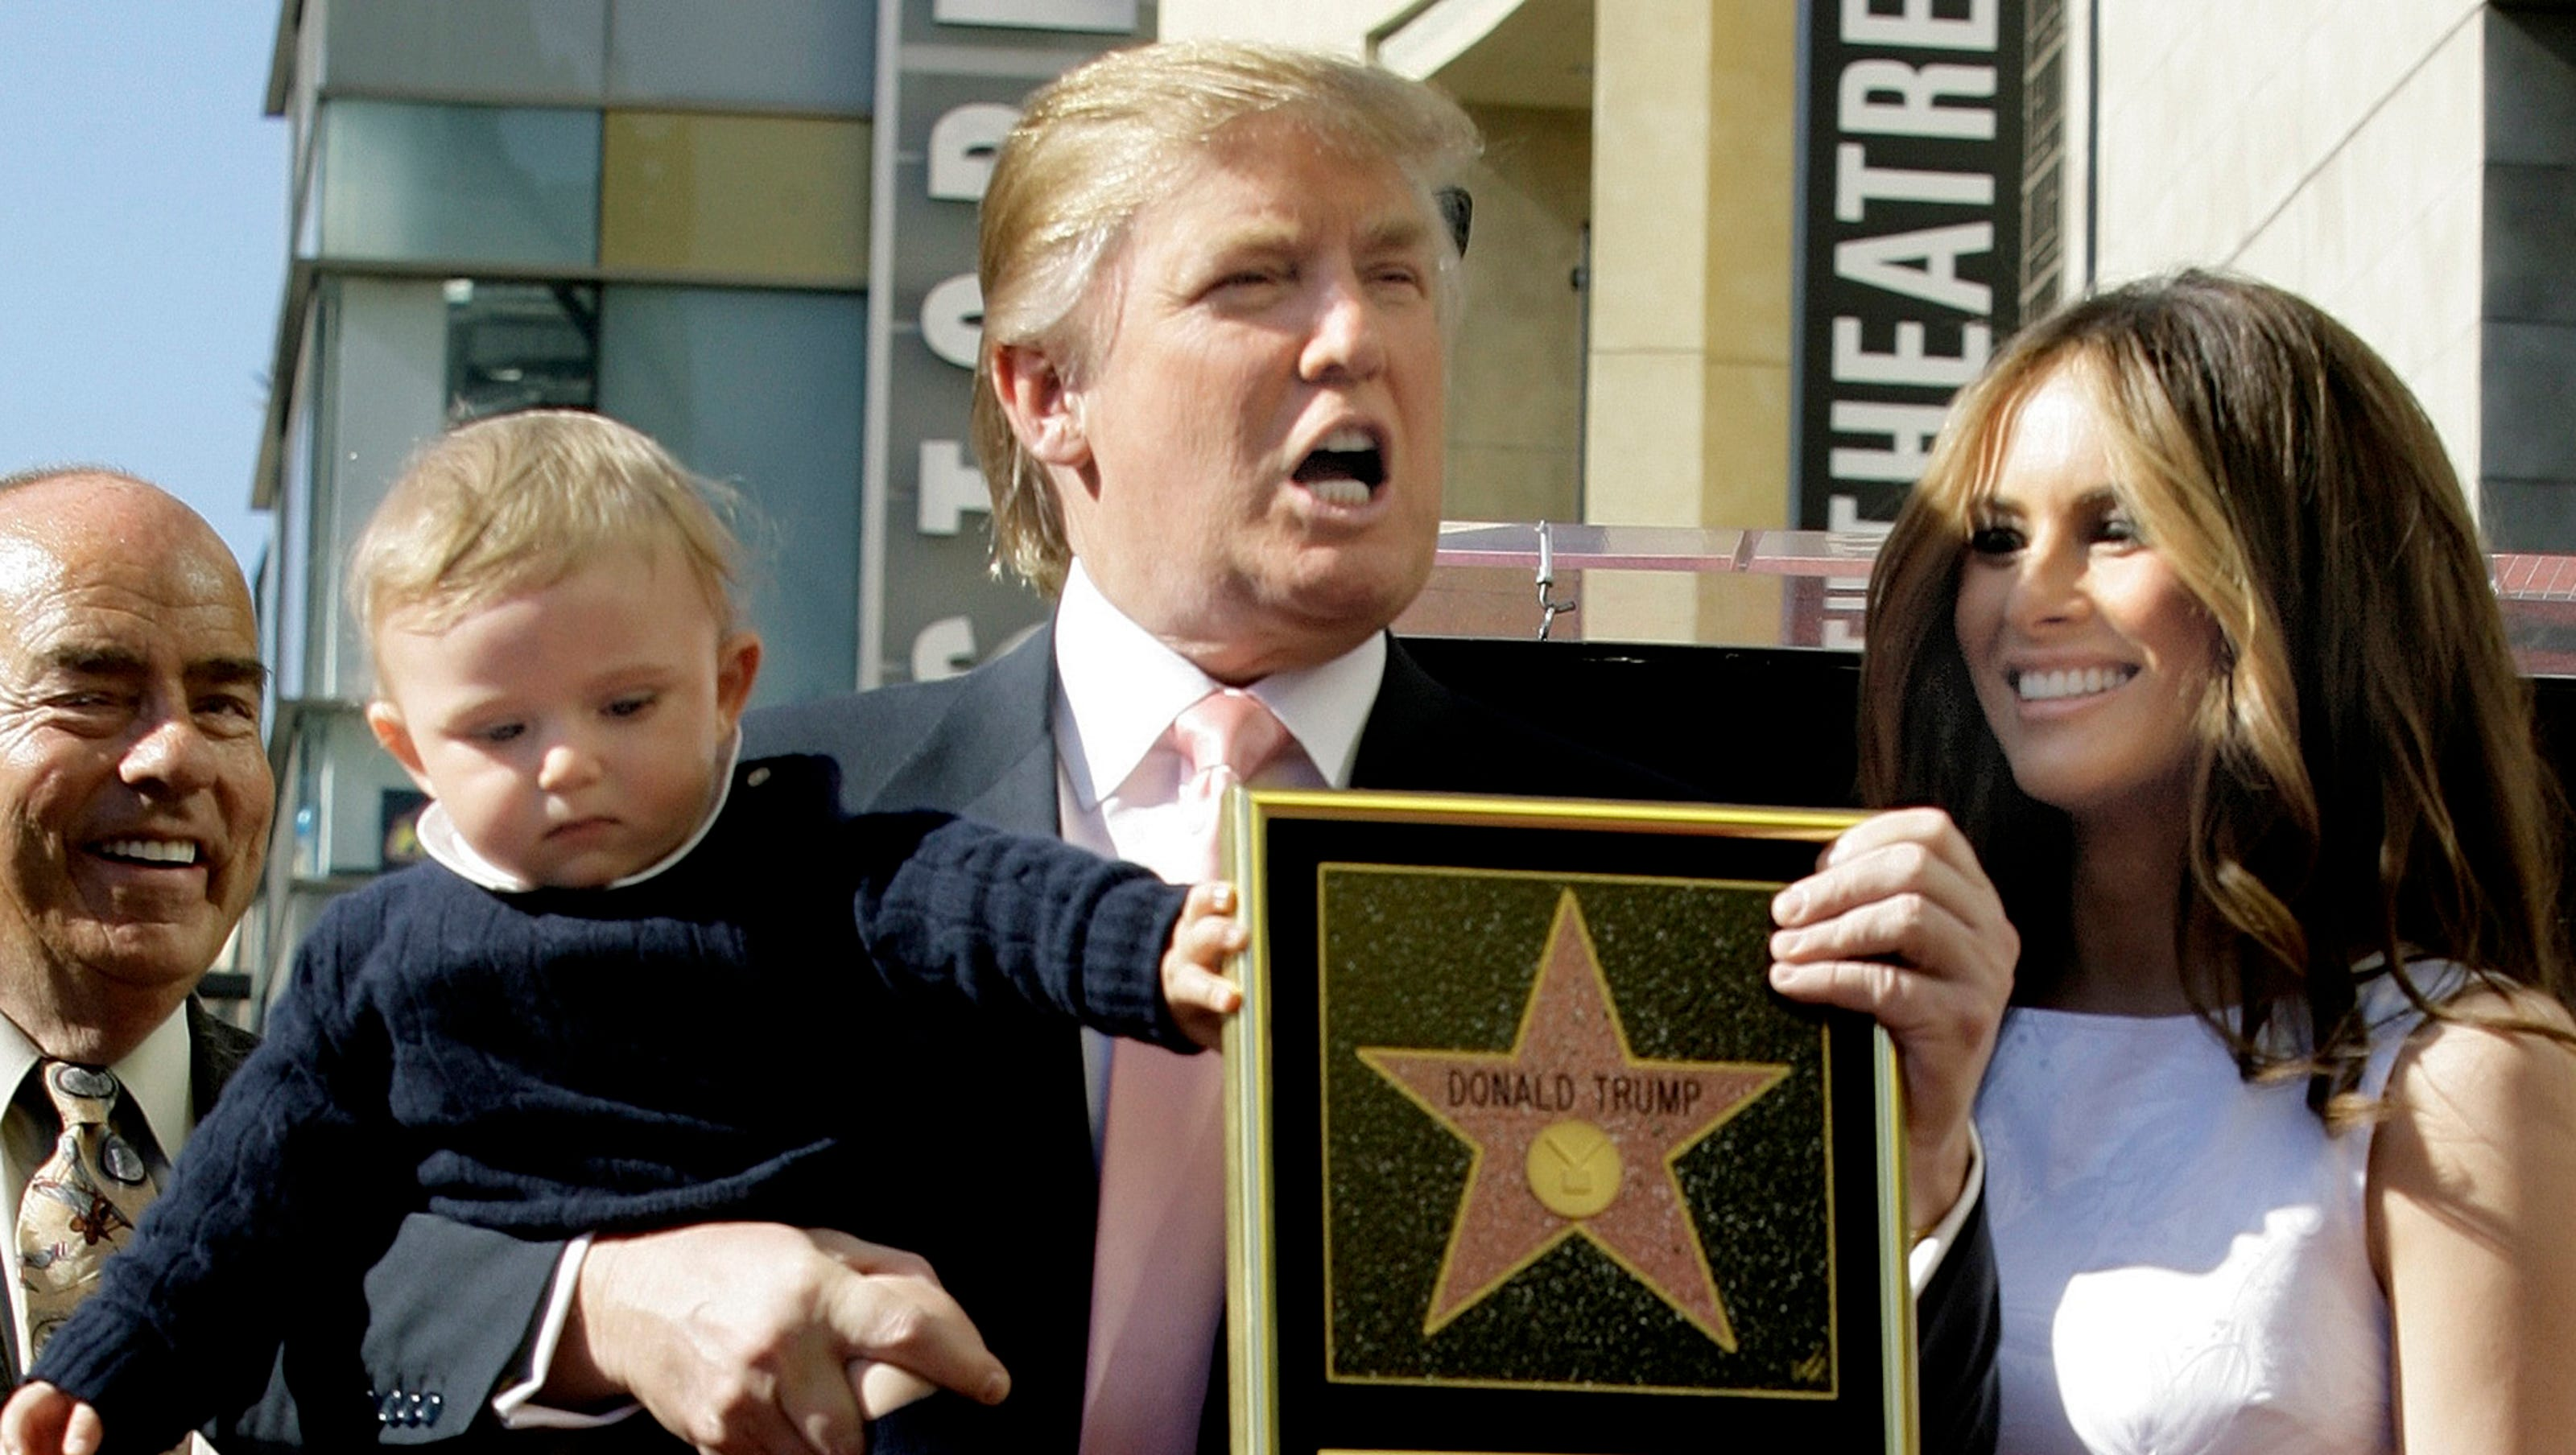 Fake Donald Trump stars appear on Hollywood Walk of Fame, report says